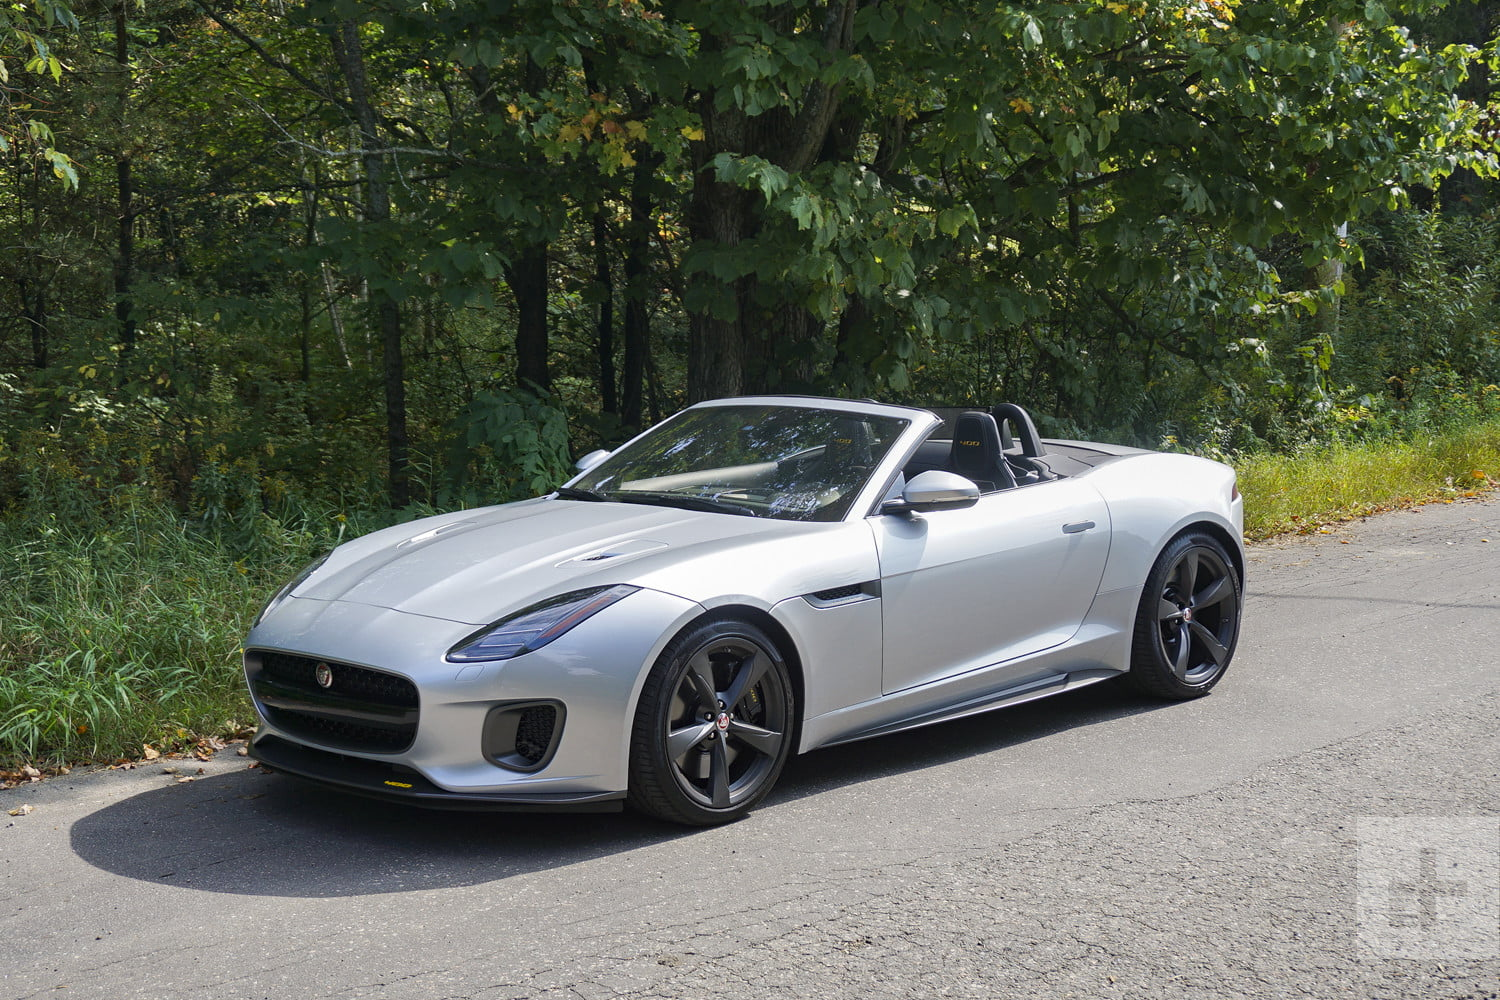 2018 jaguar f type 400 sport first drive review digital